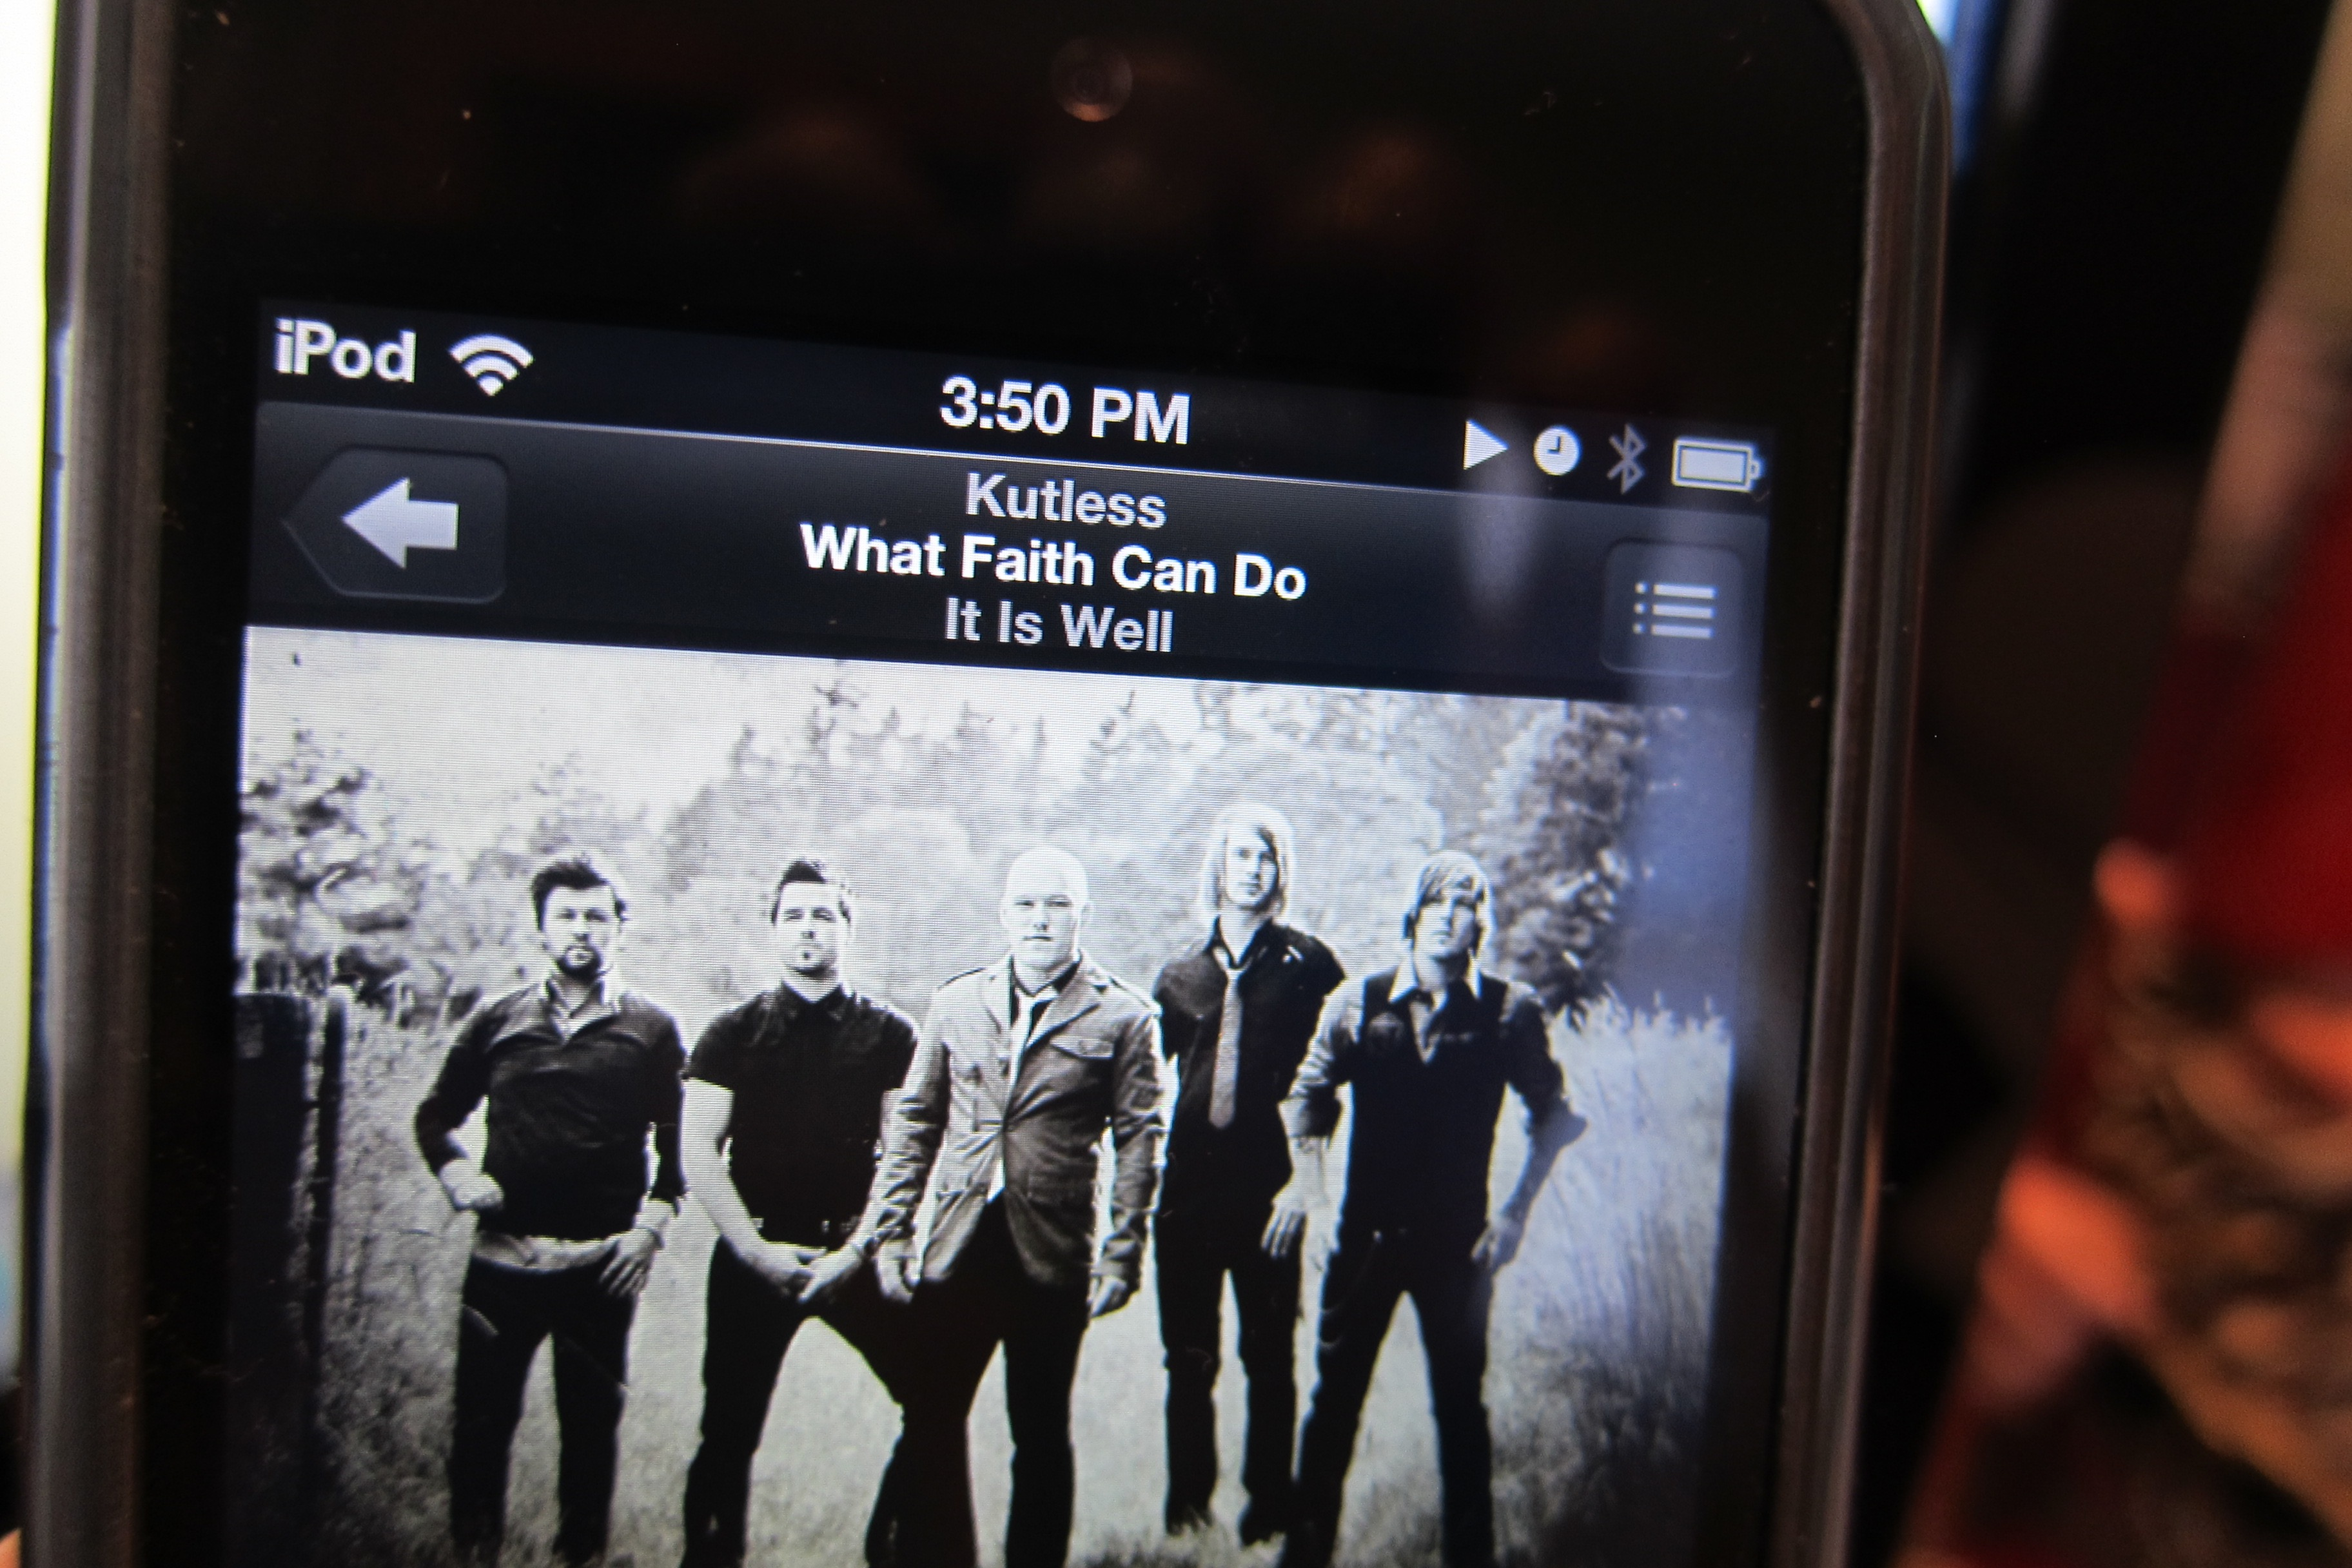 """What Faith Can Do"" Kutless album: It Is Well"